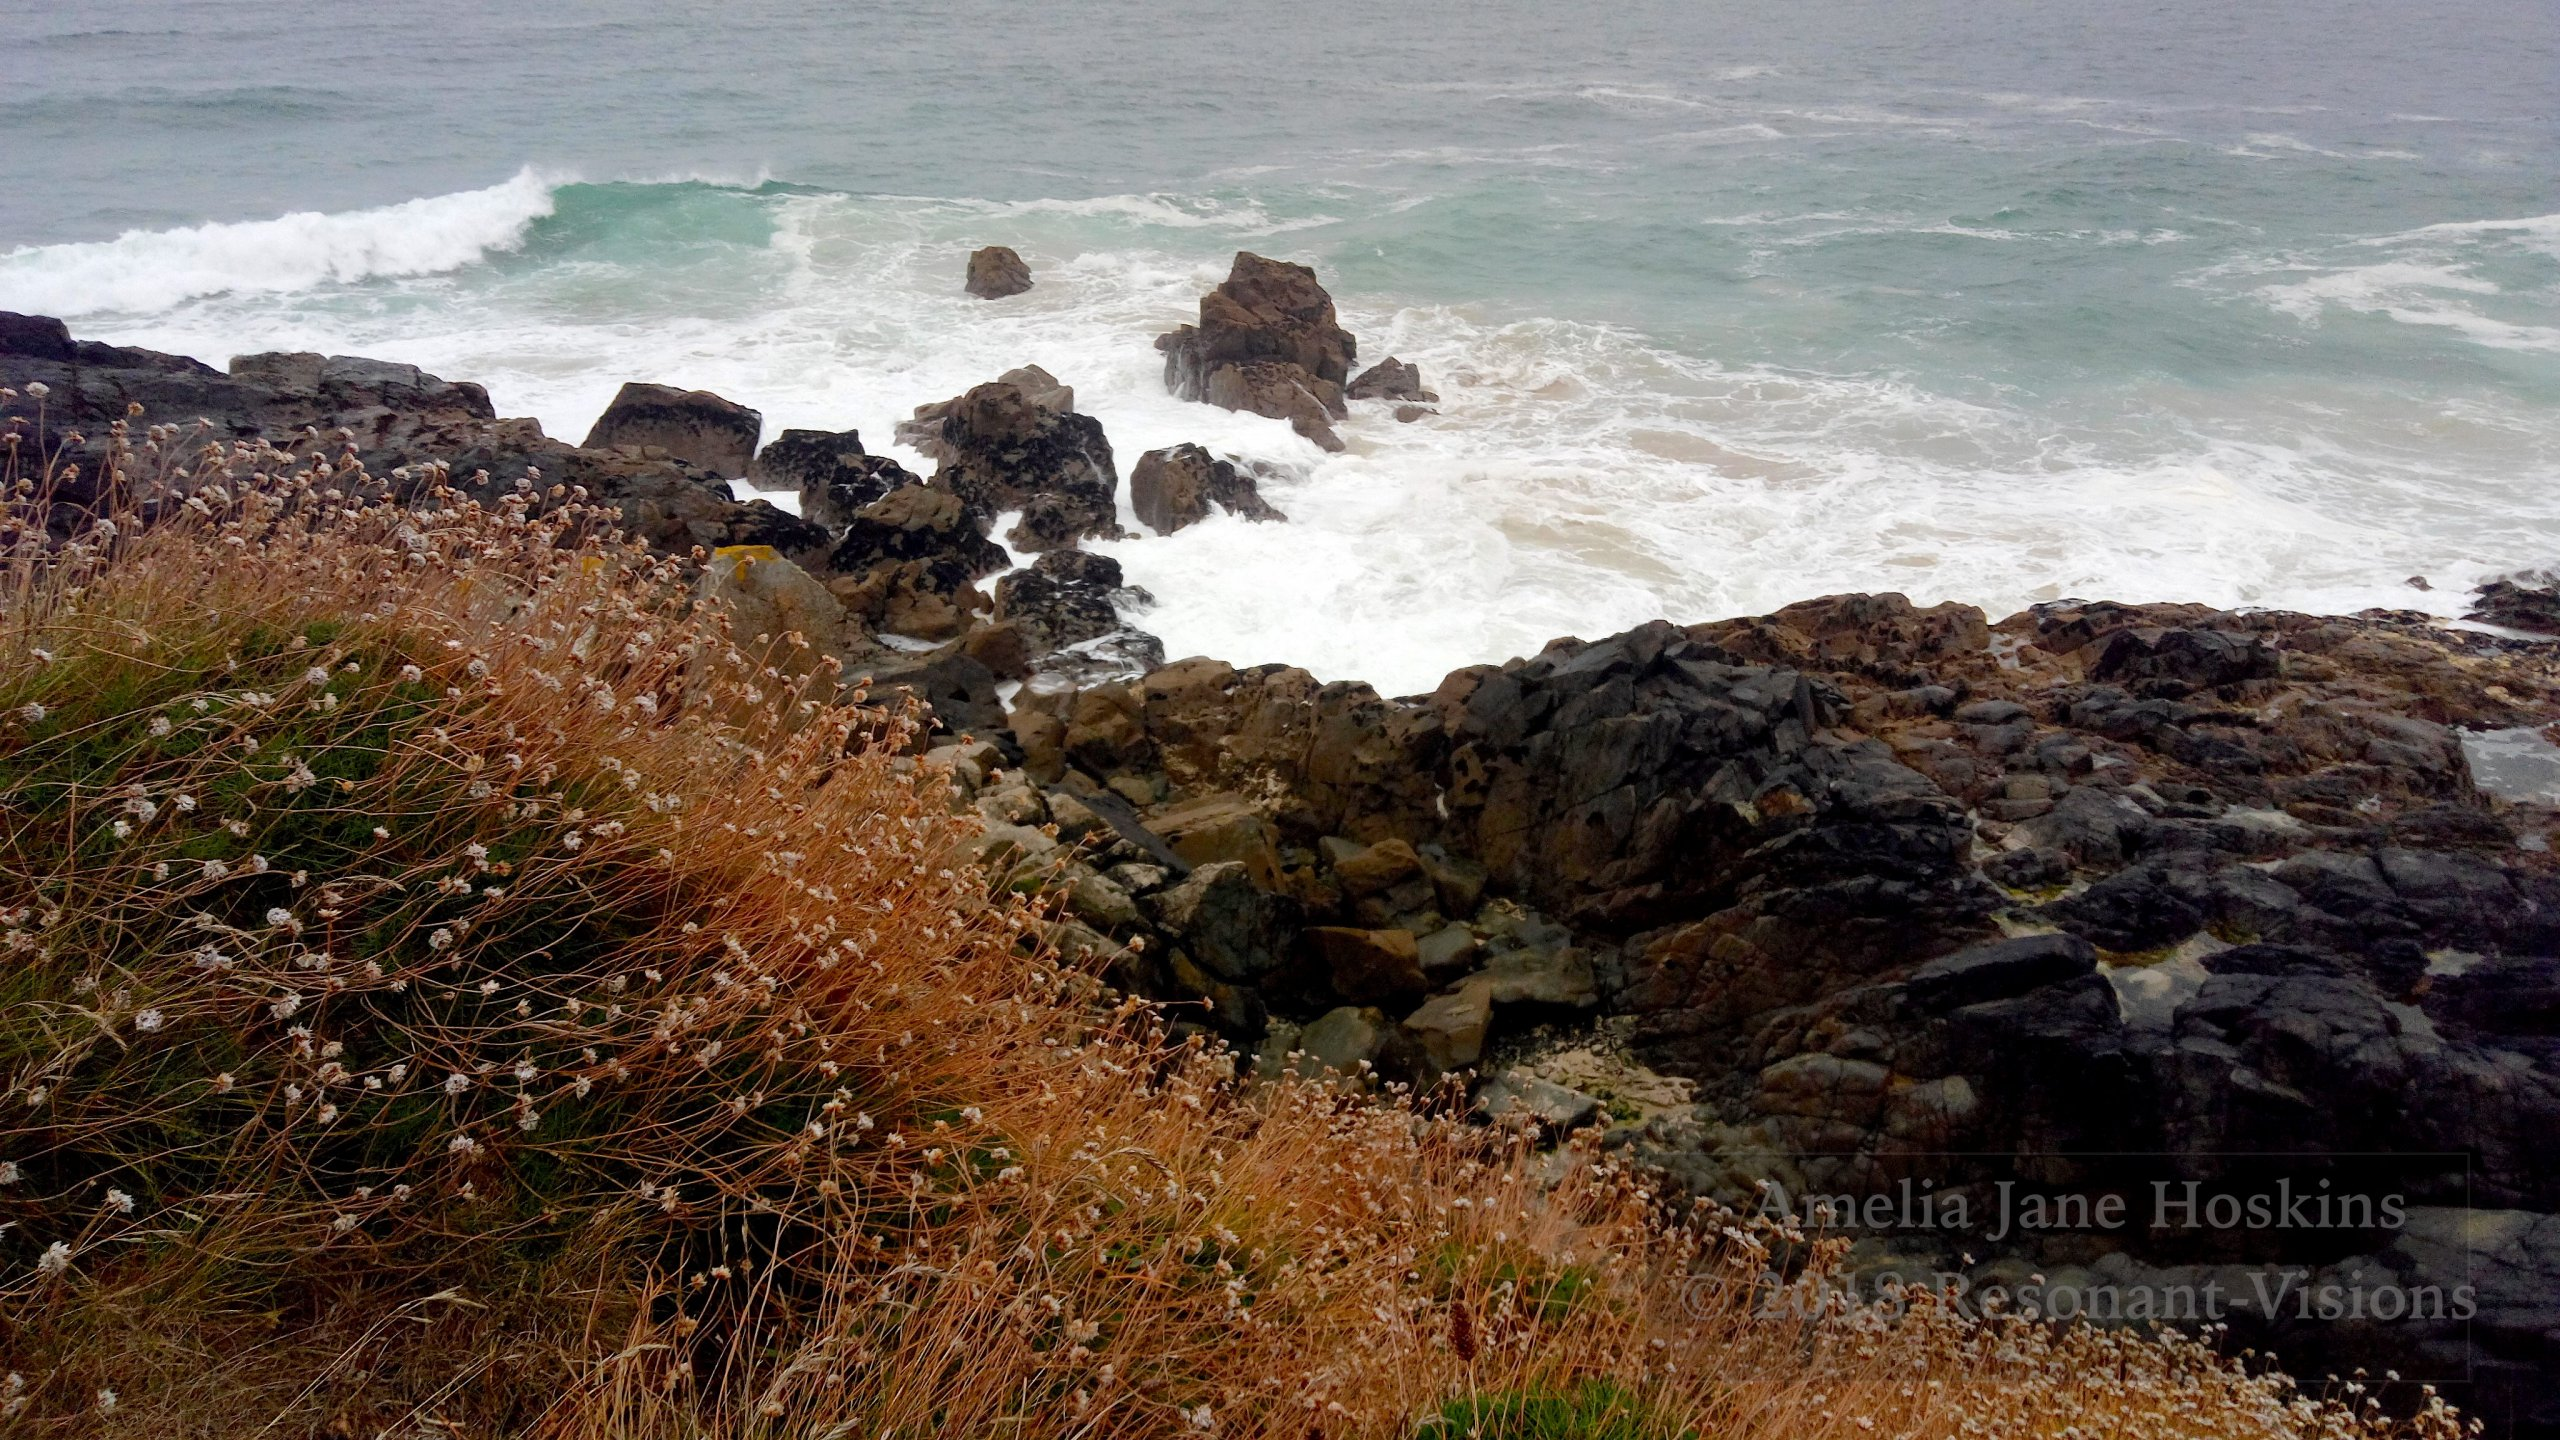 Transition from thrift path over dry rocks to brown tidal rocks and waves breaking